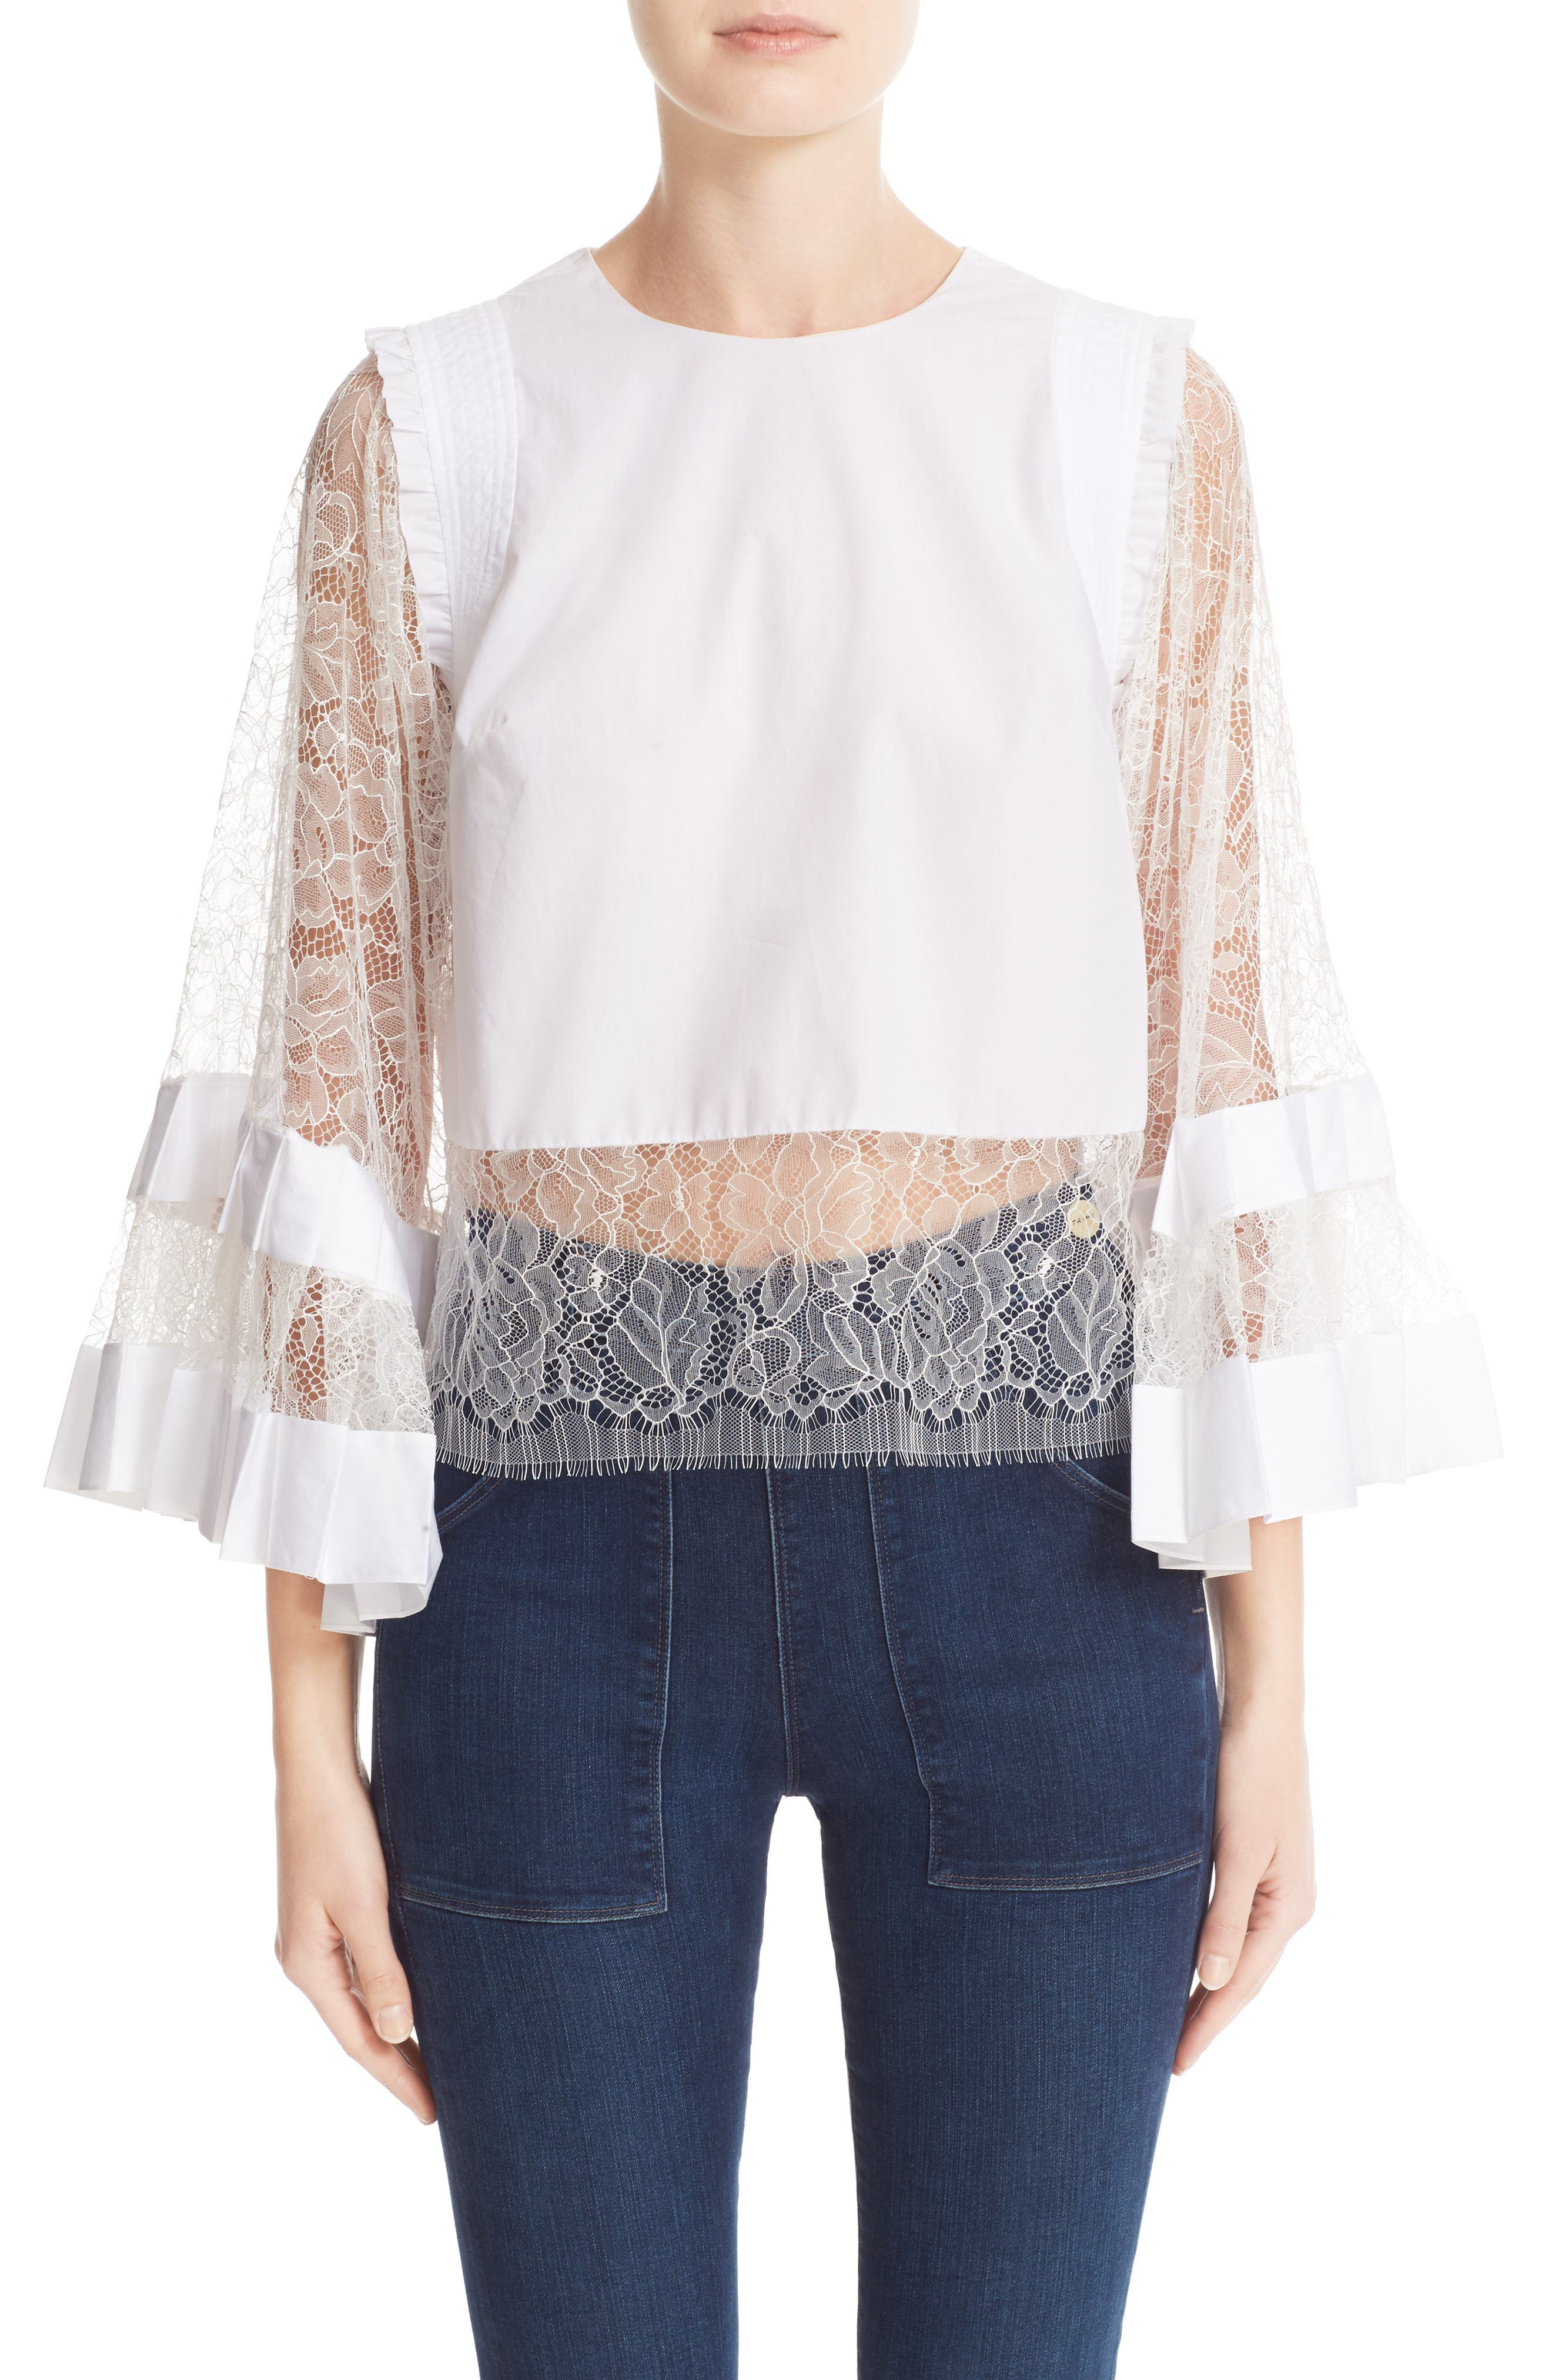 ADAM LIPPES Lace Trim Bell Sleeve Blouse